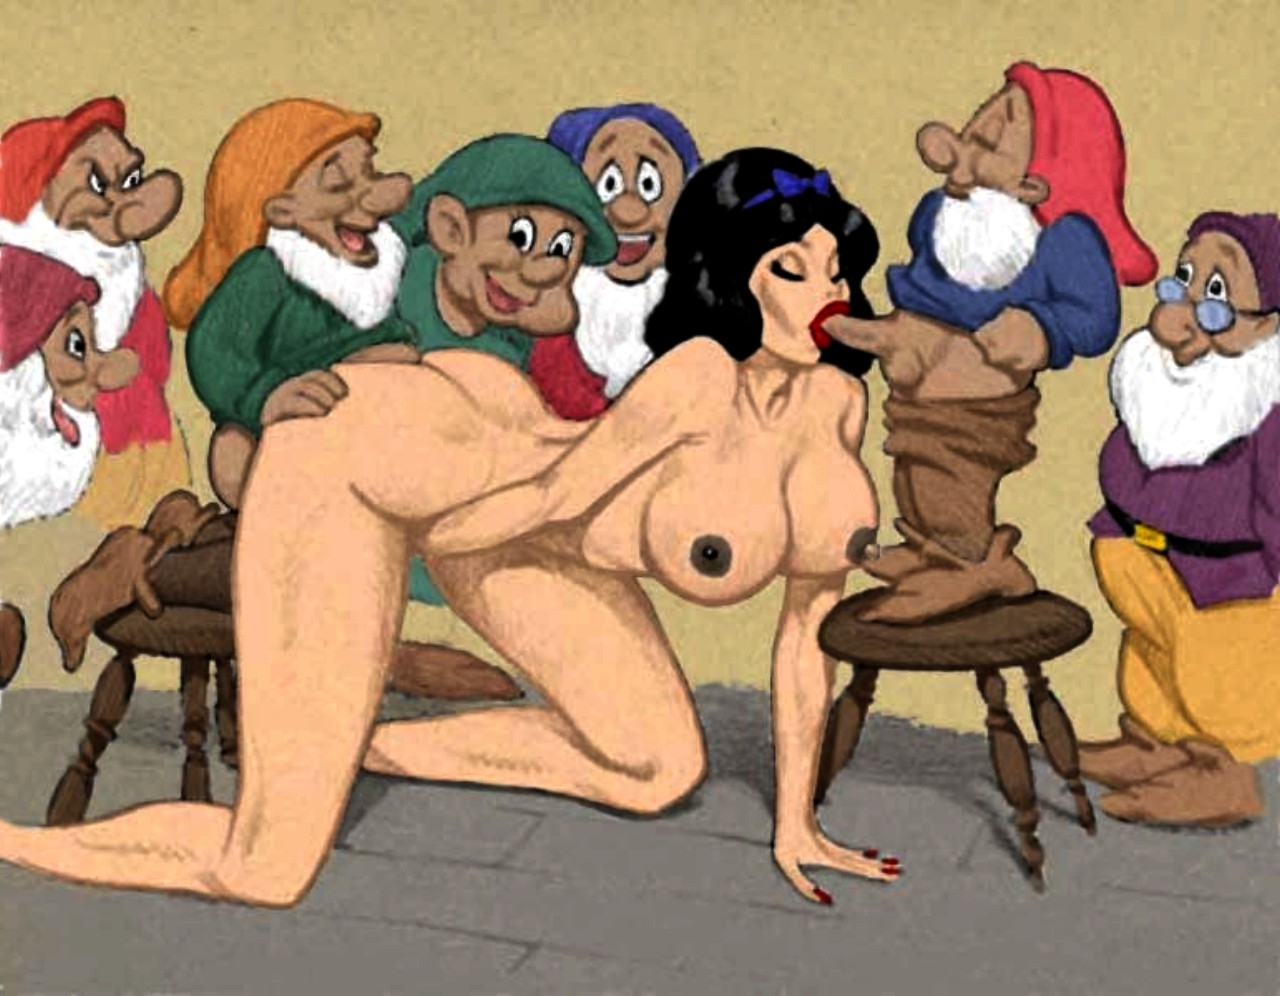 Fuck snow white and the seven dwarfs  sexy videos